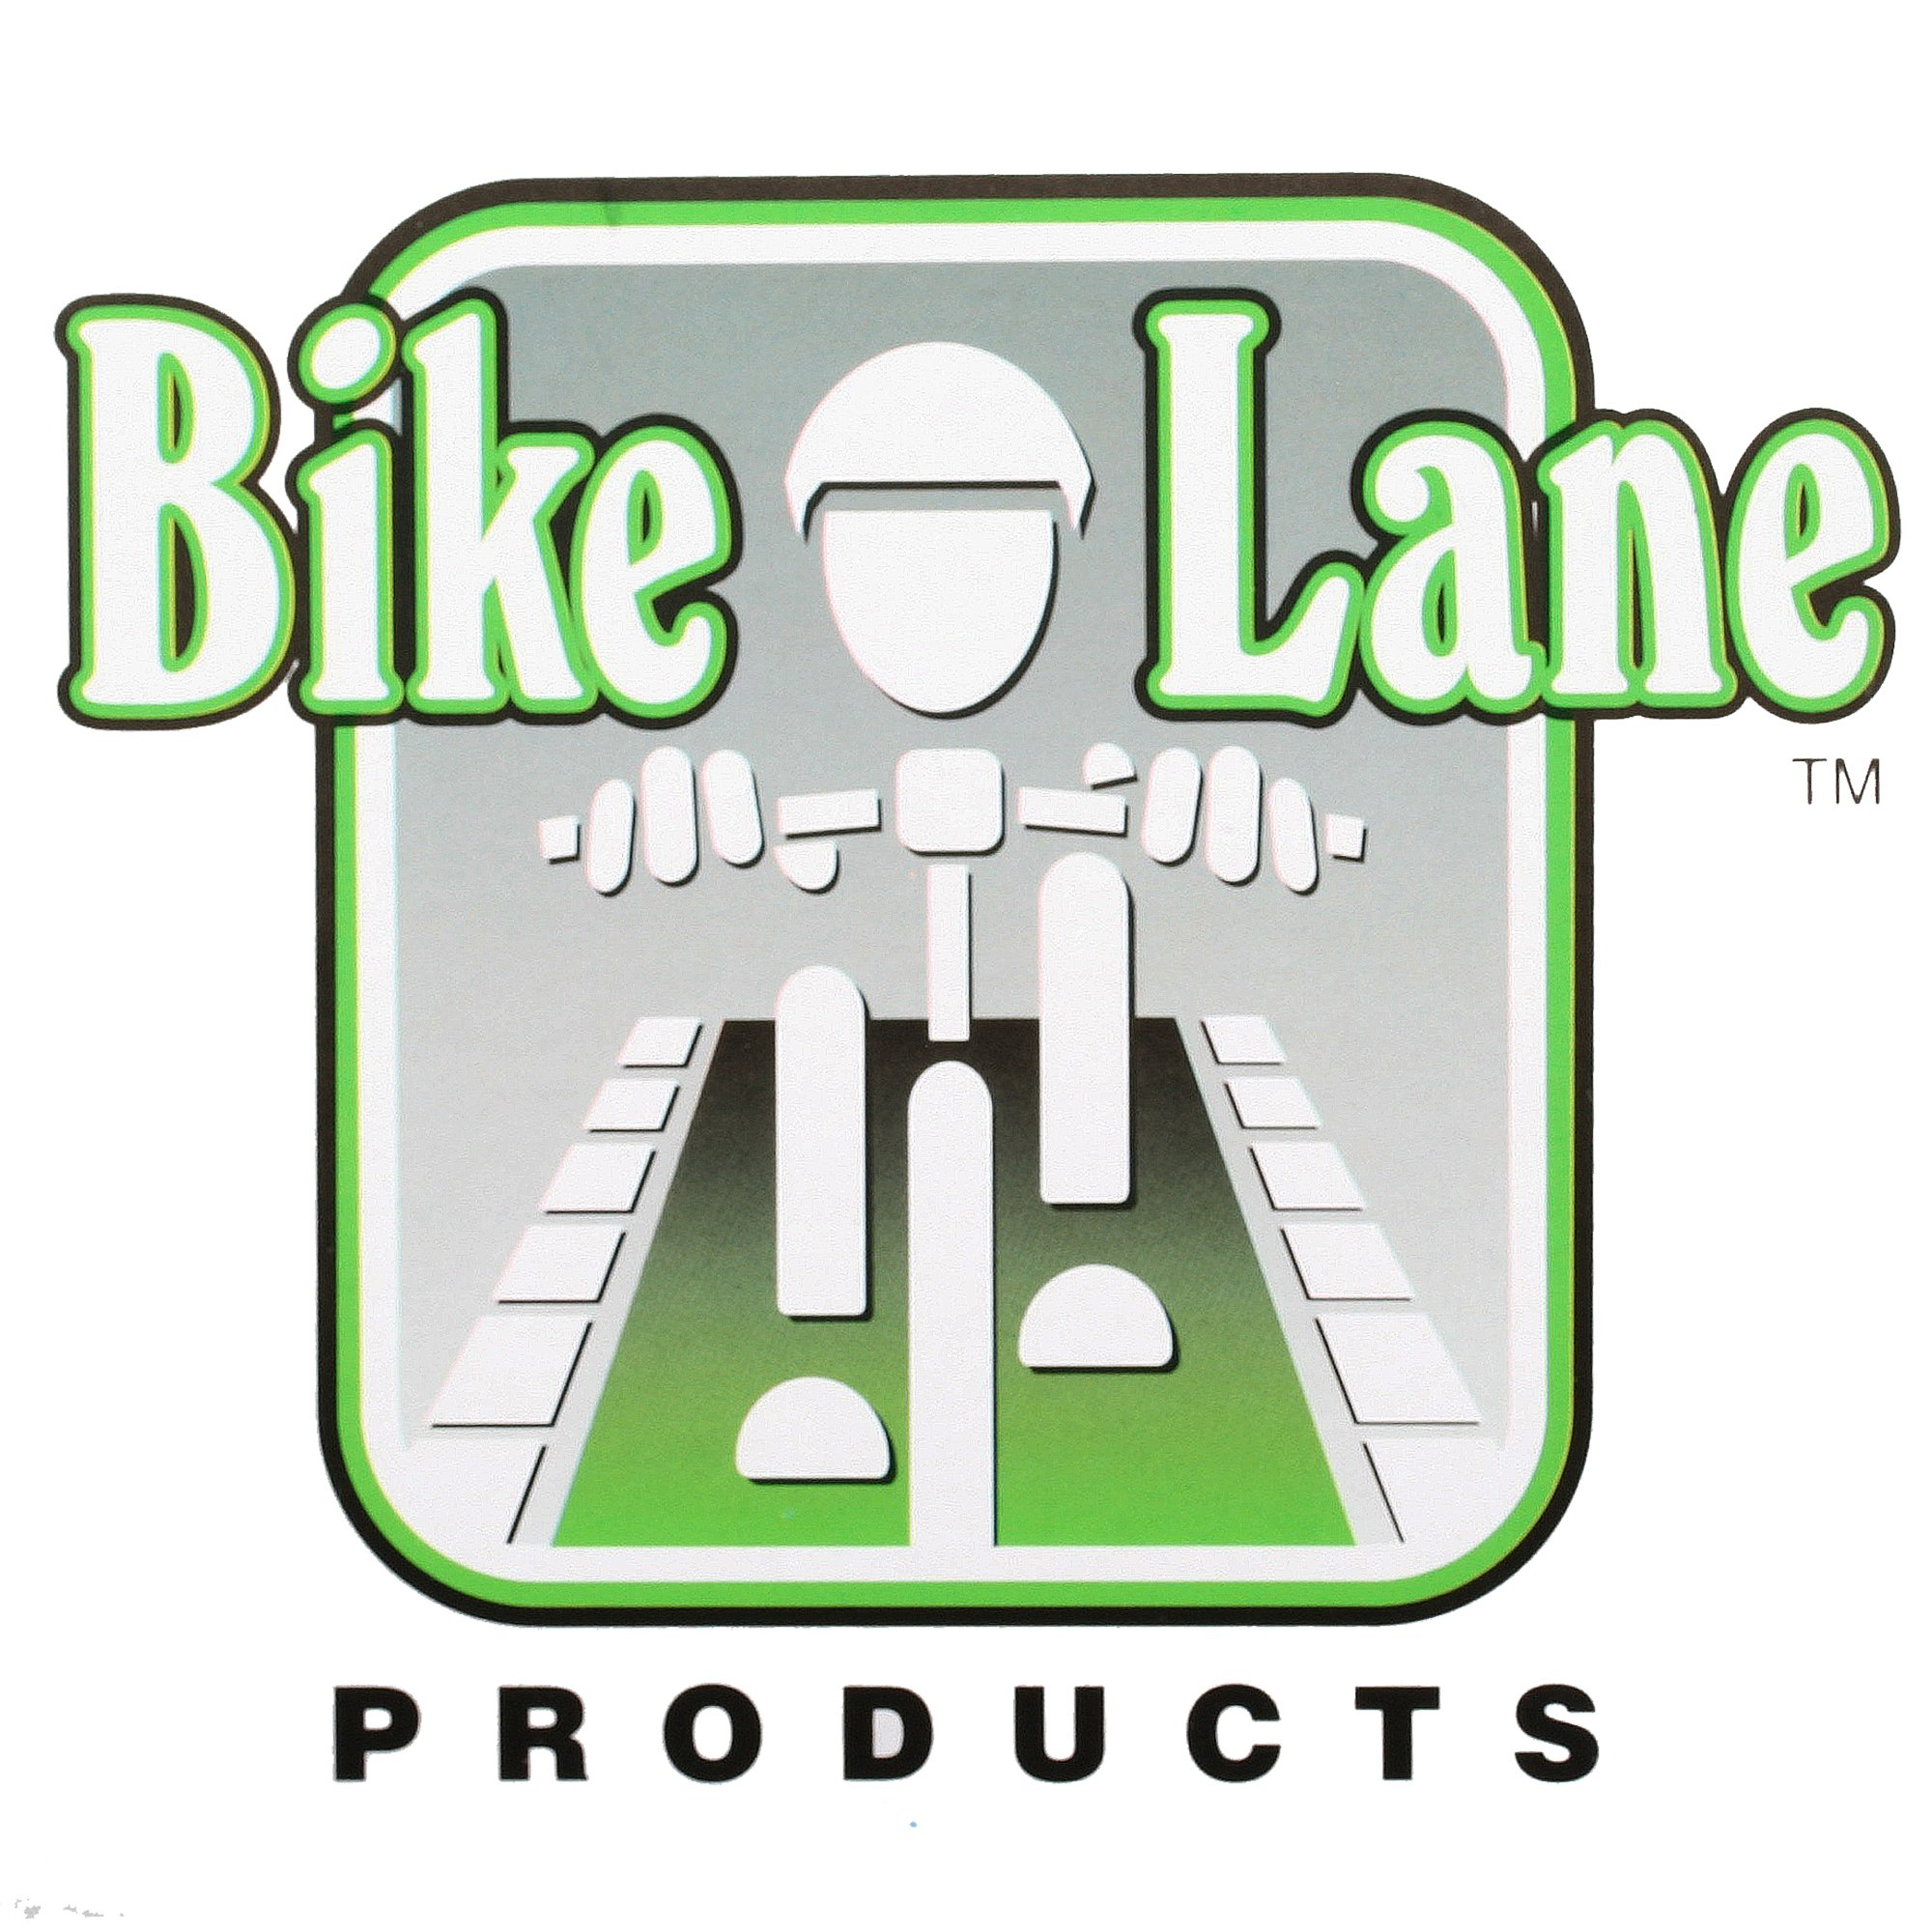 Bike Lane Trainer Bicycle Indoor Trainer Exercise Machine Ride All Year Around With 850 Gram Machined Steel Flywheel for the Most Natural Pedal Feel by Bike Lane (Image #7)